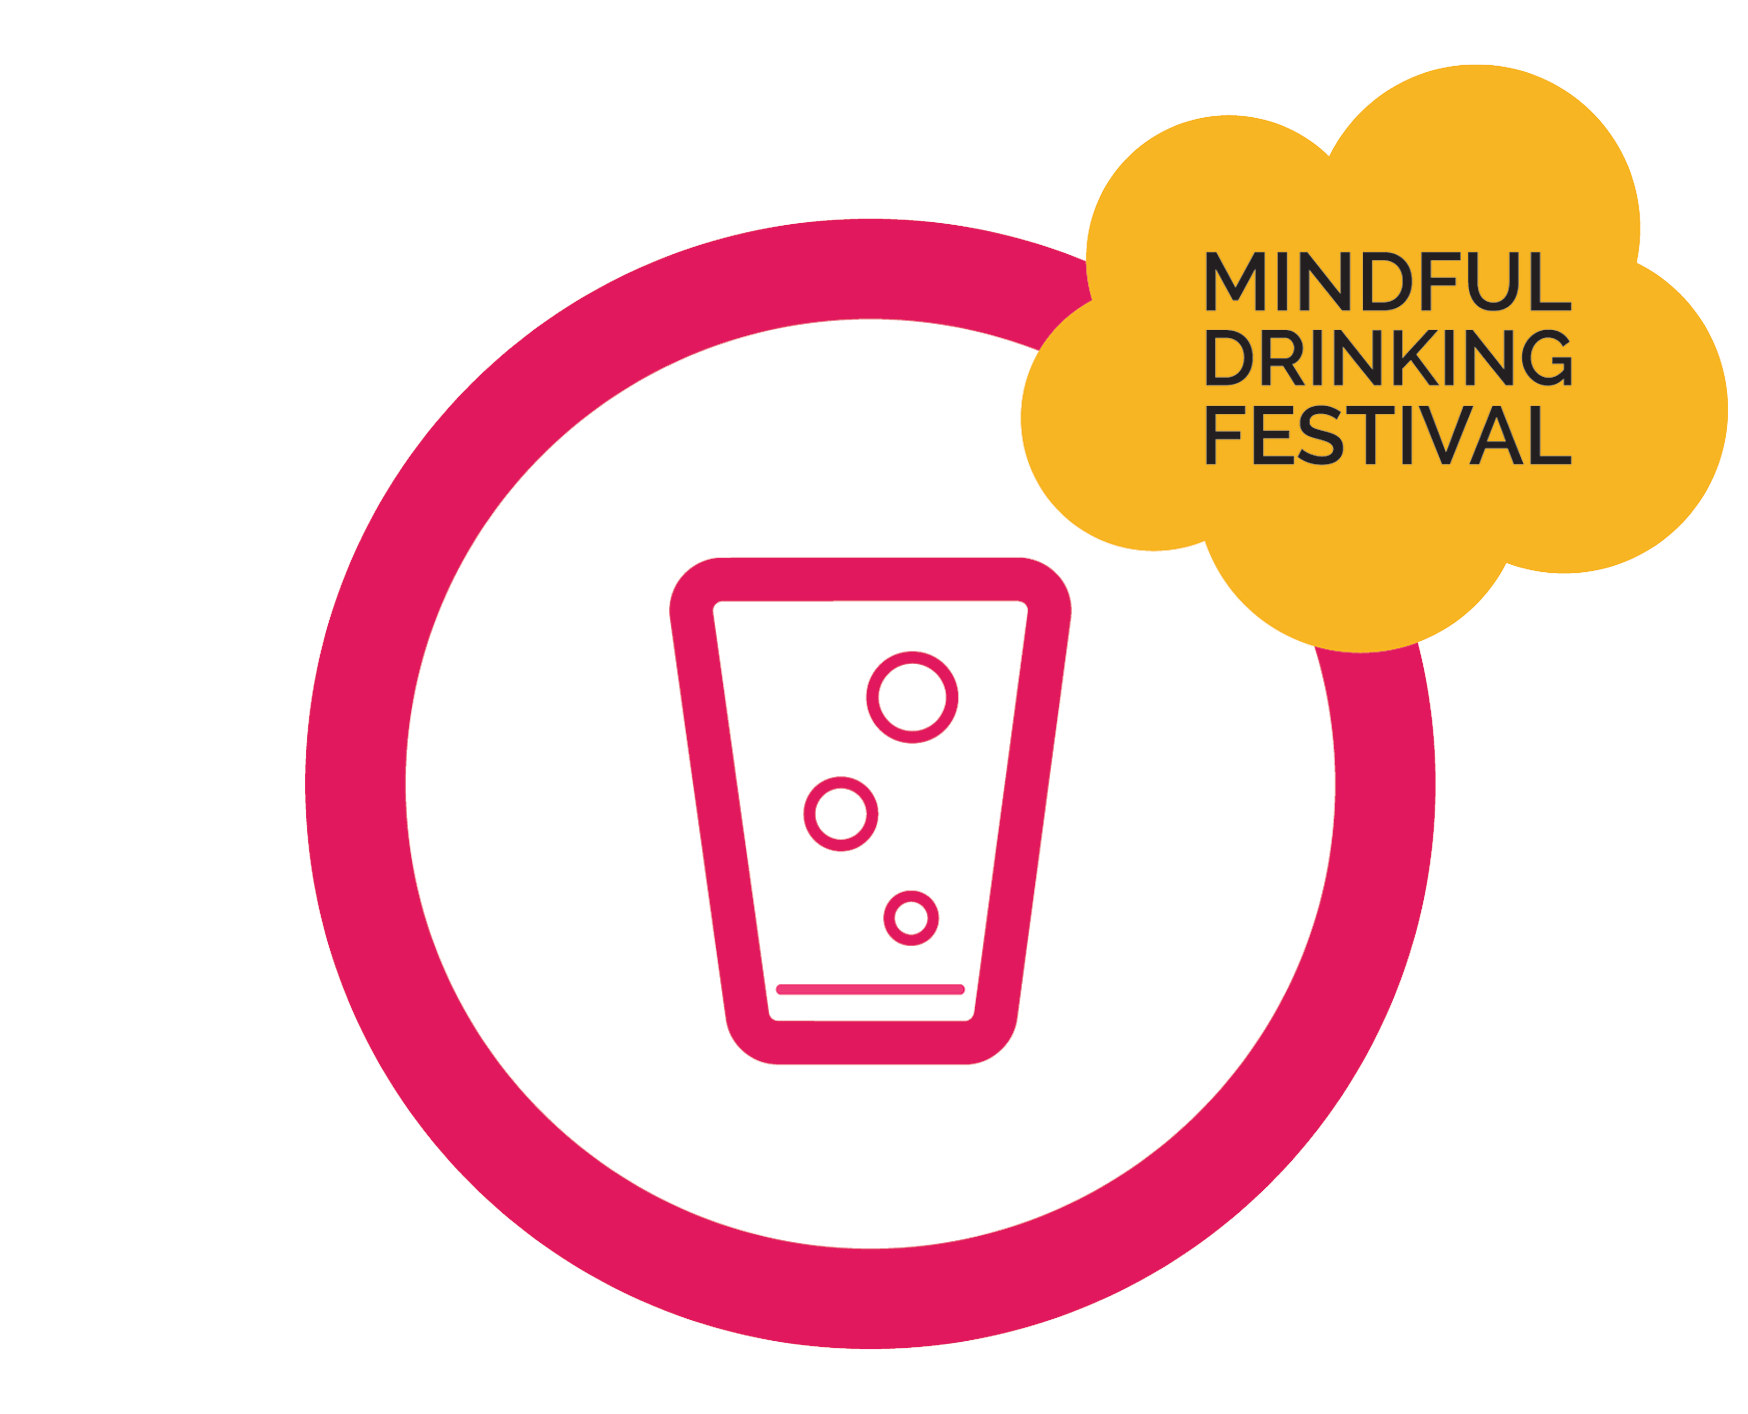 Club Soda Mindful Drinking Festival